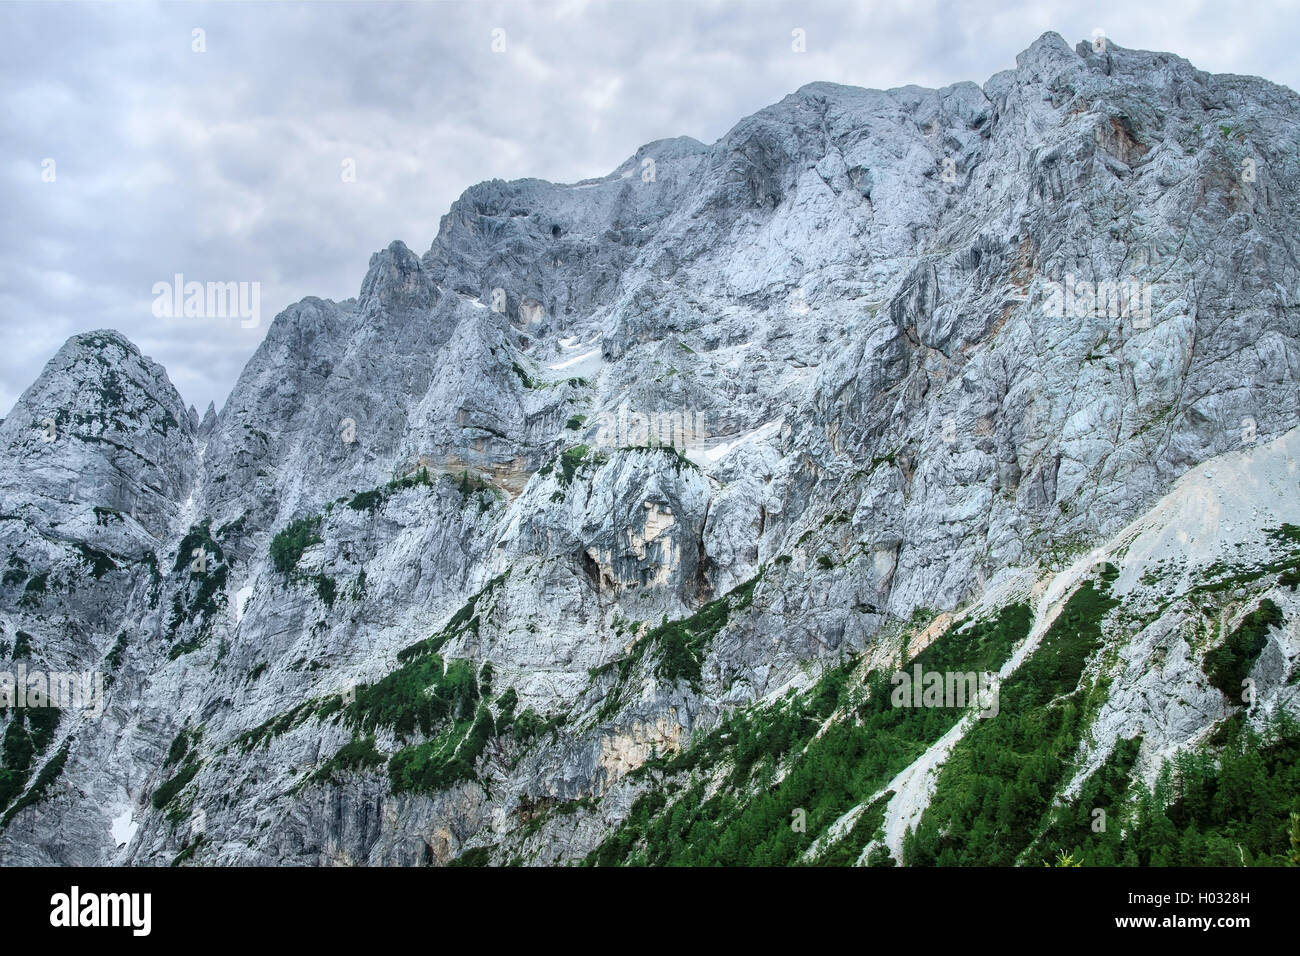 Pagan Girl rock formation on the side of Mount Prisank in Slovenia - Stock Image